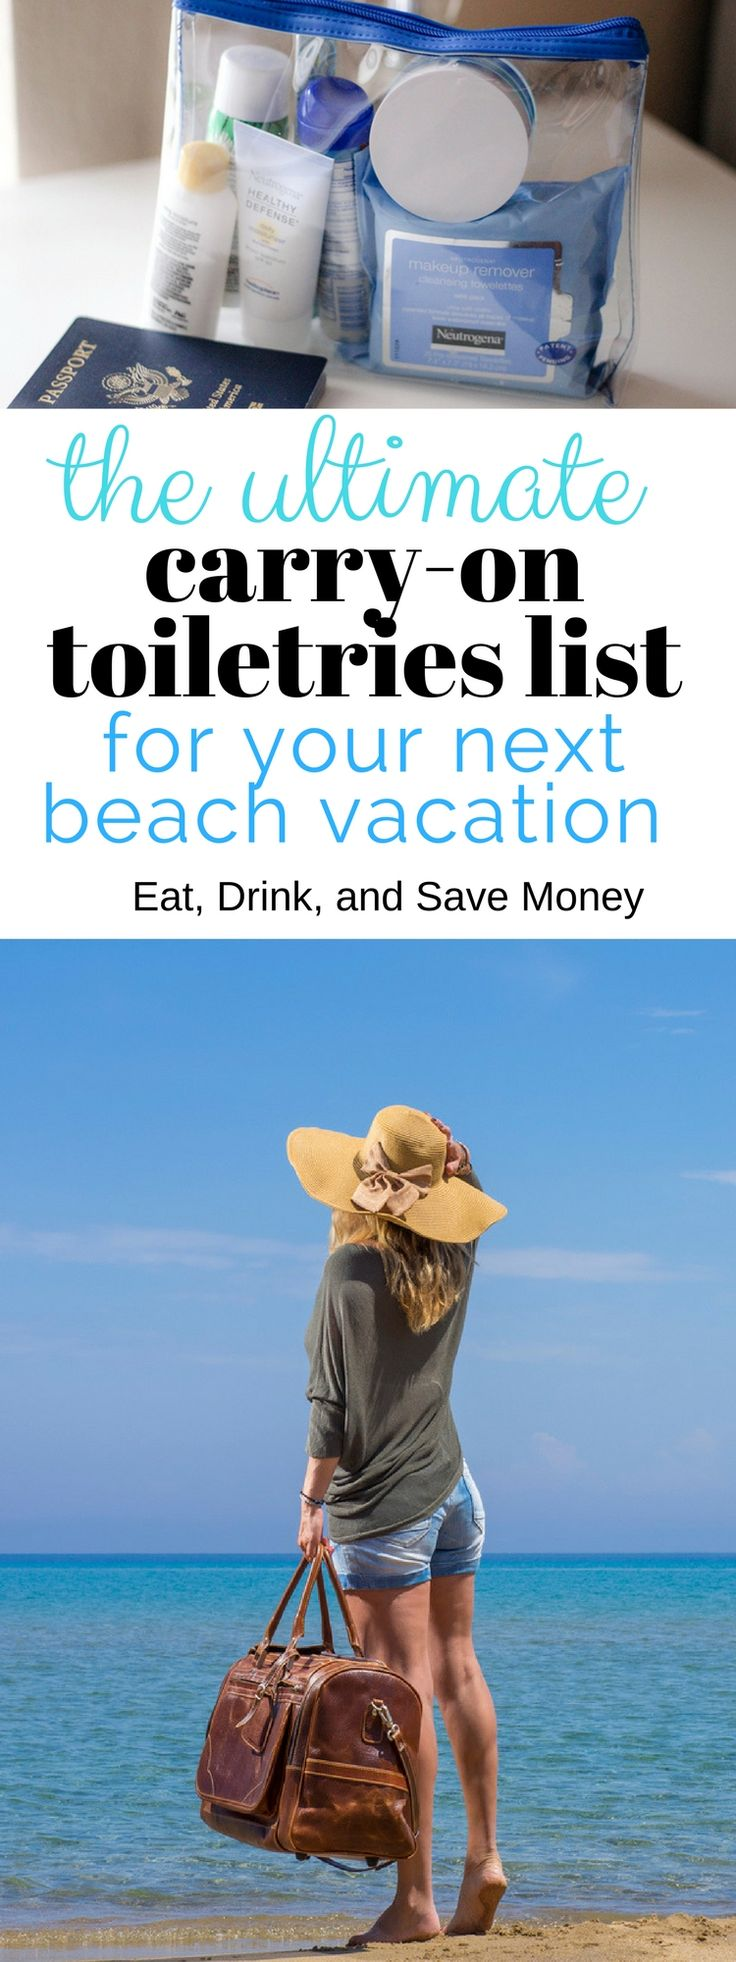 The ultimate carry-on toiletries list for your next beach vacation. What to pack for a beach vacation. What to pack in a carry on